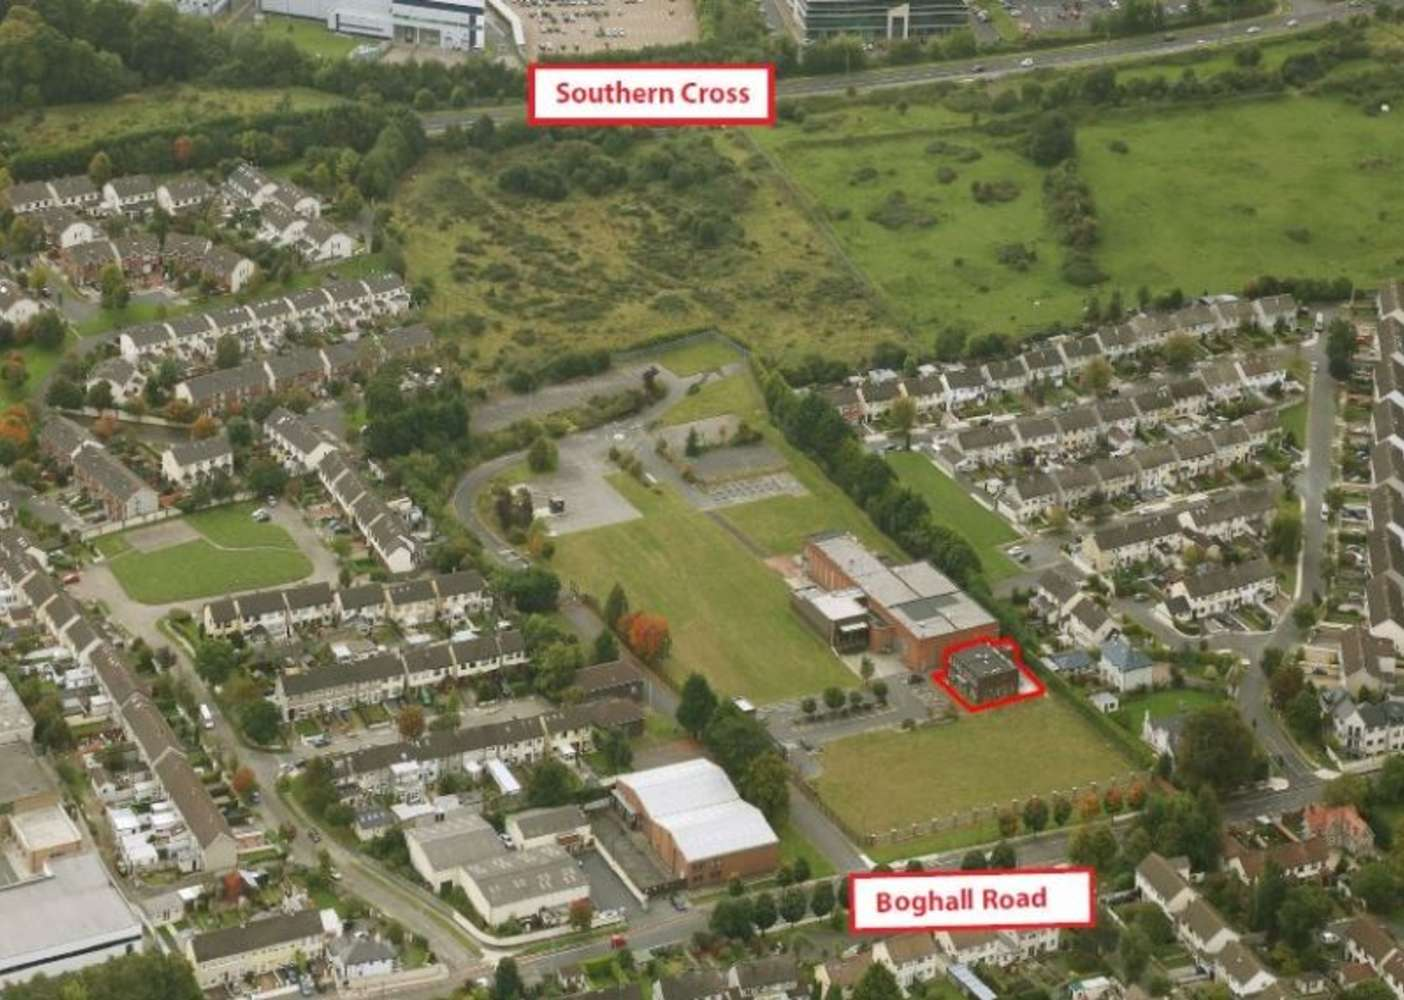 Industrial Co wicklow, A98 VR72 - Detached Two Storey Office, Boghall Road - 8925413